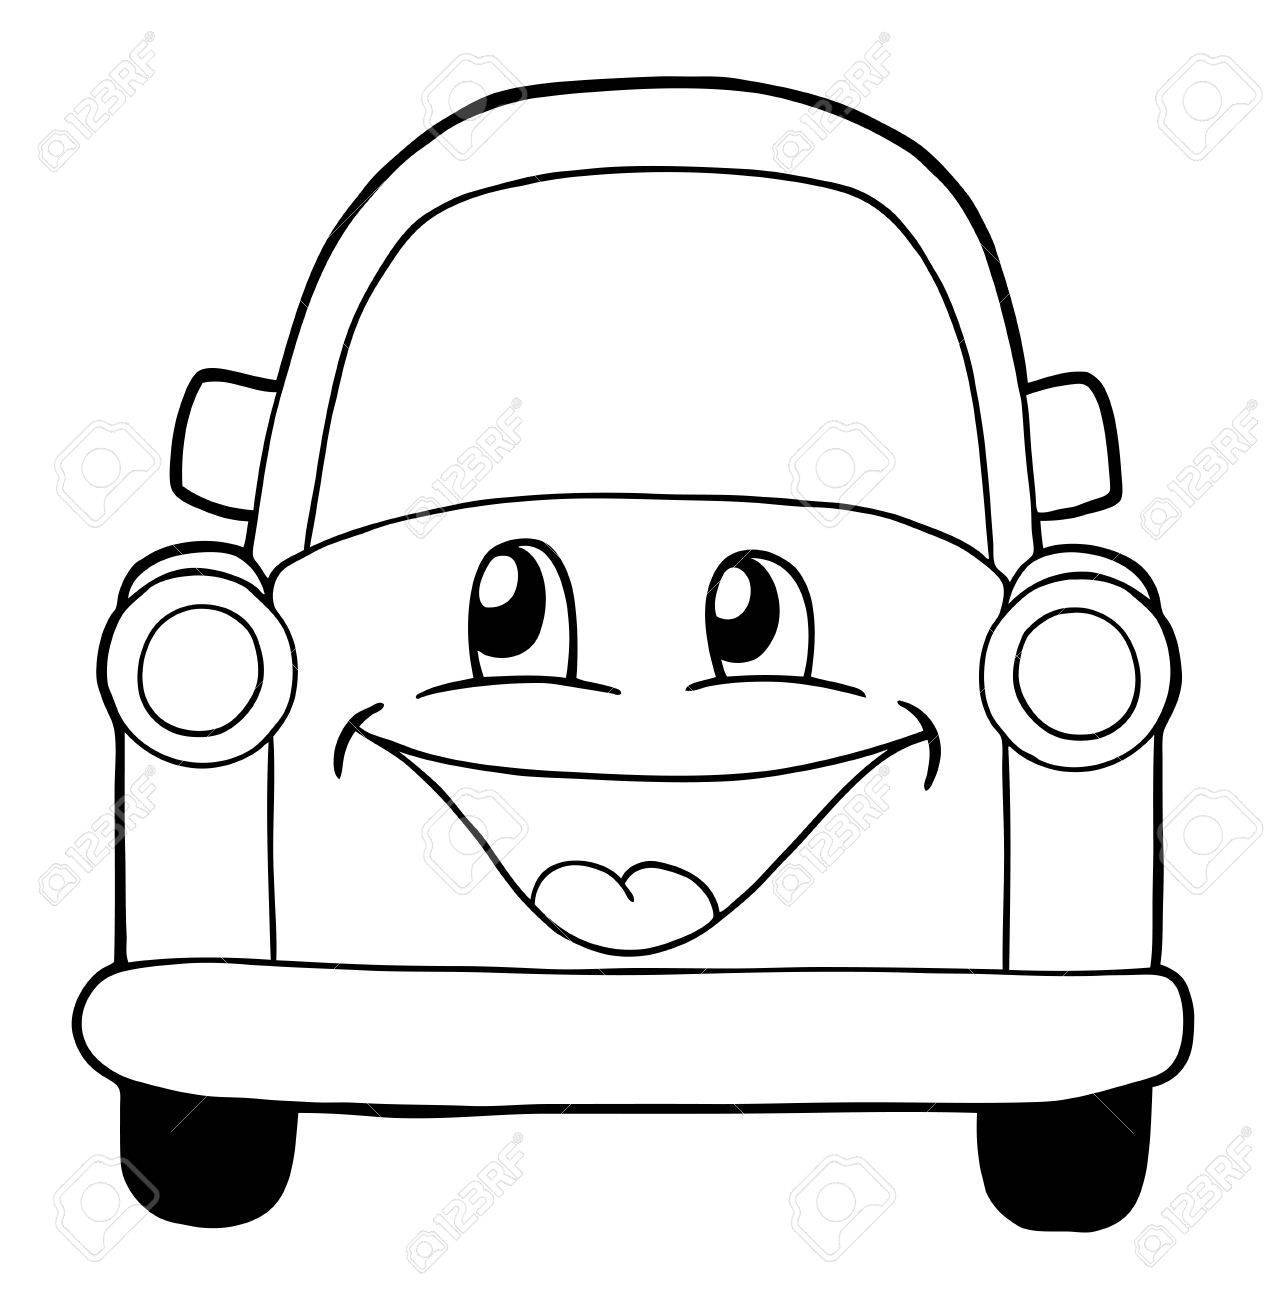 cute car coloring page illustration royalty free cliparts